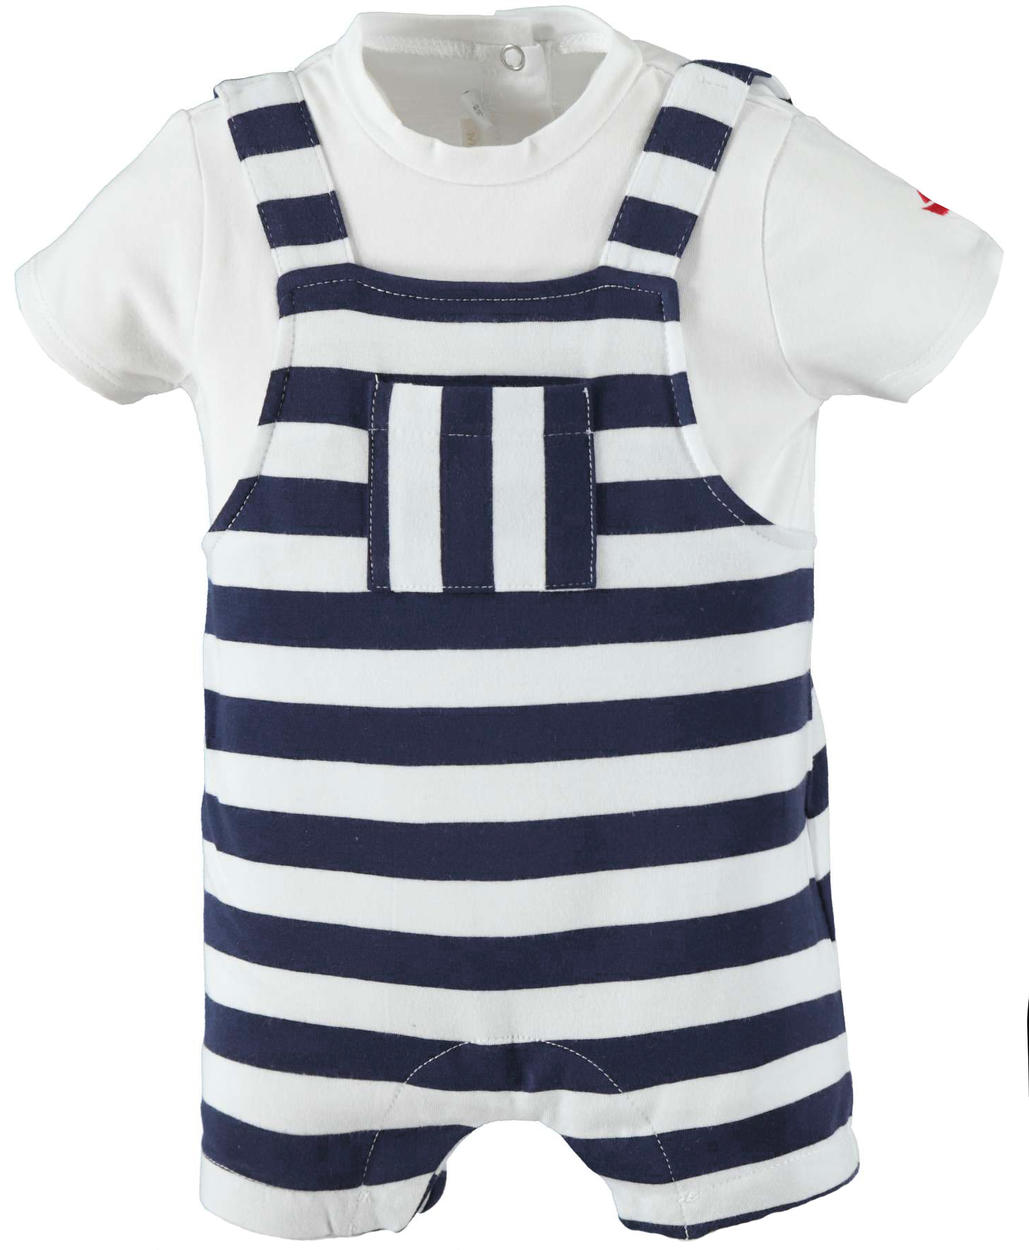 249d5b9e0 Summer baby boy romper suit in stretch cotton for newborn from 0 to ...